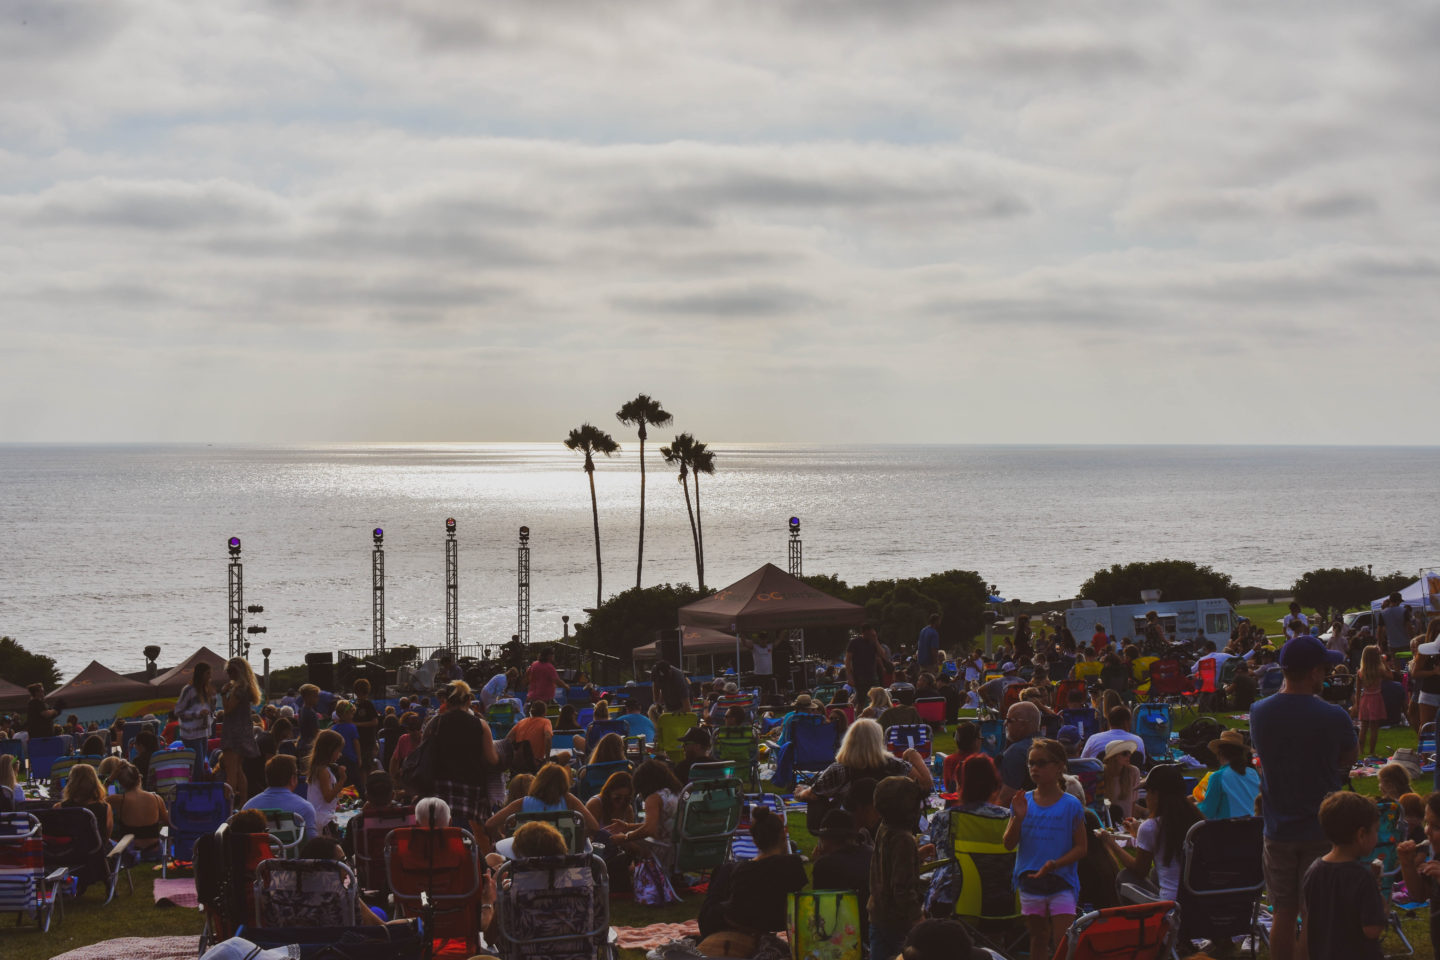 SUMMER CONCERTS ON THE BEACH